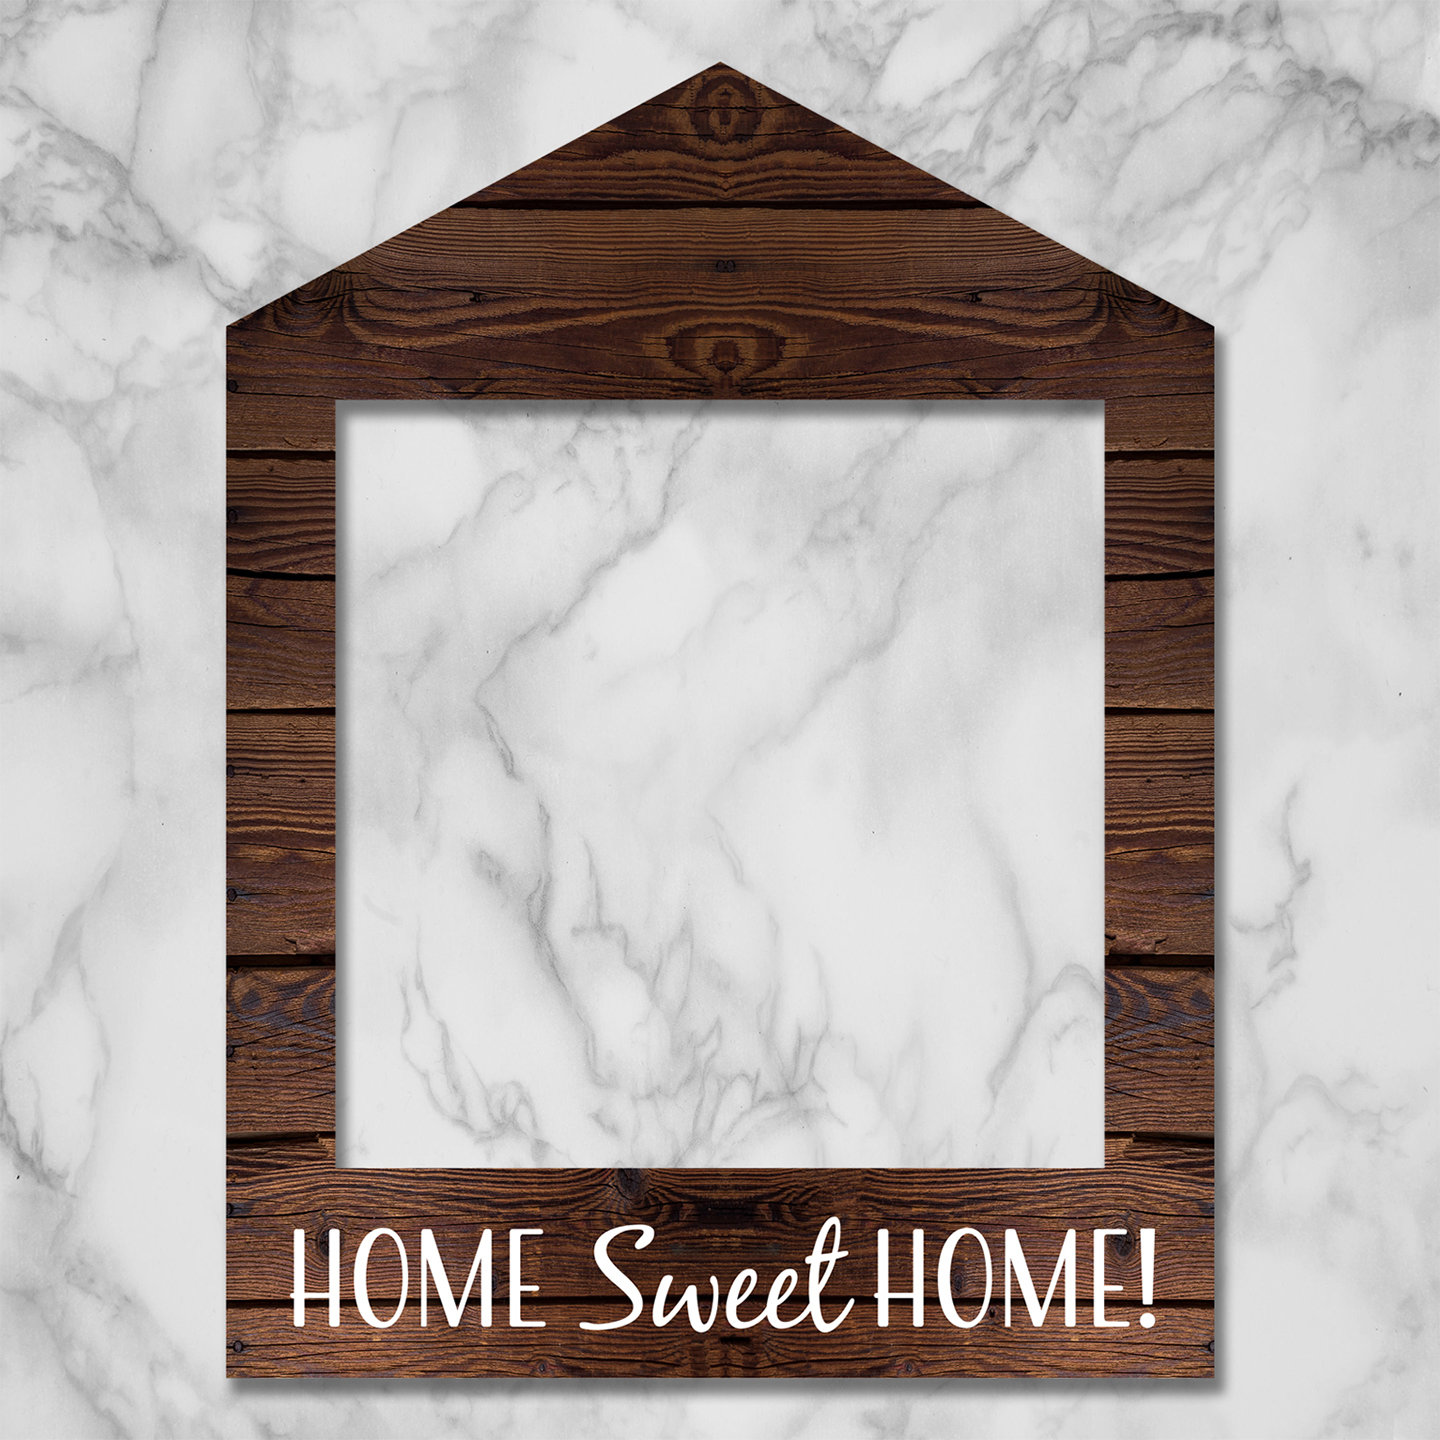 Wooden Home Sweet Home Frame Prop